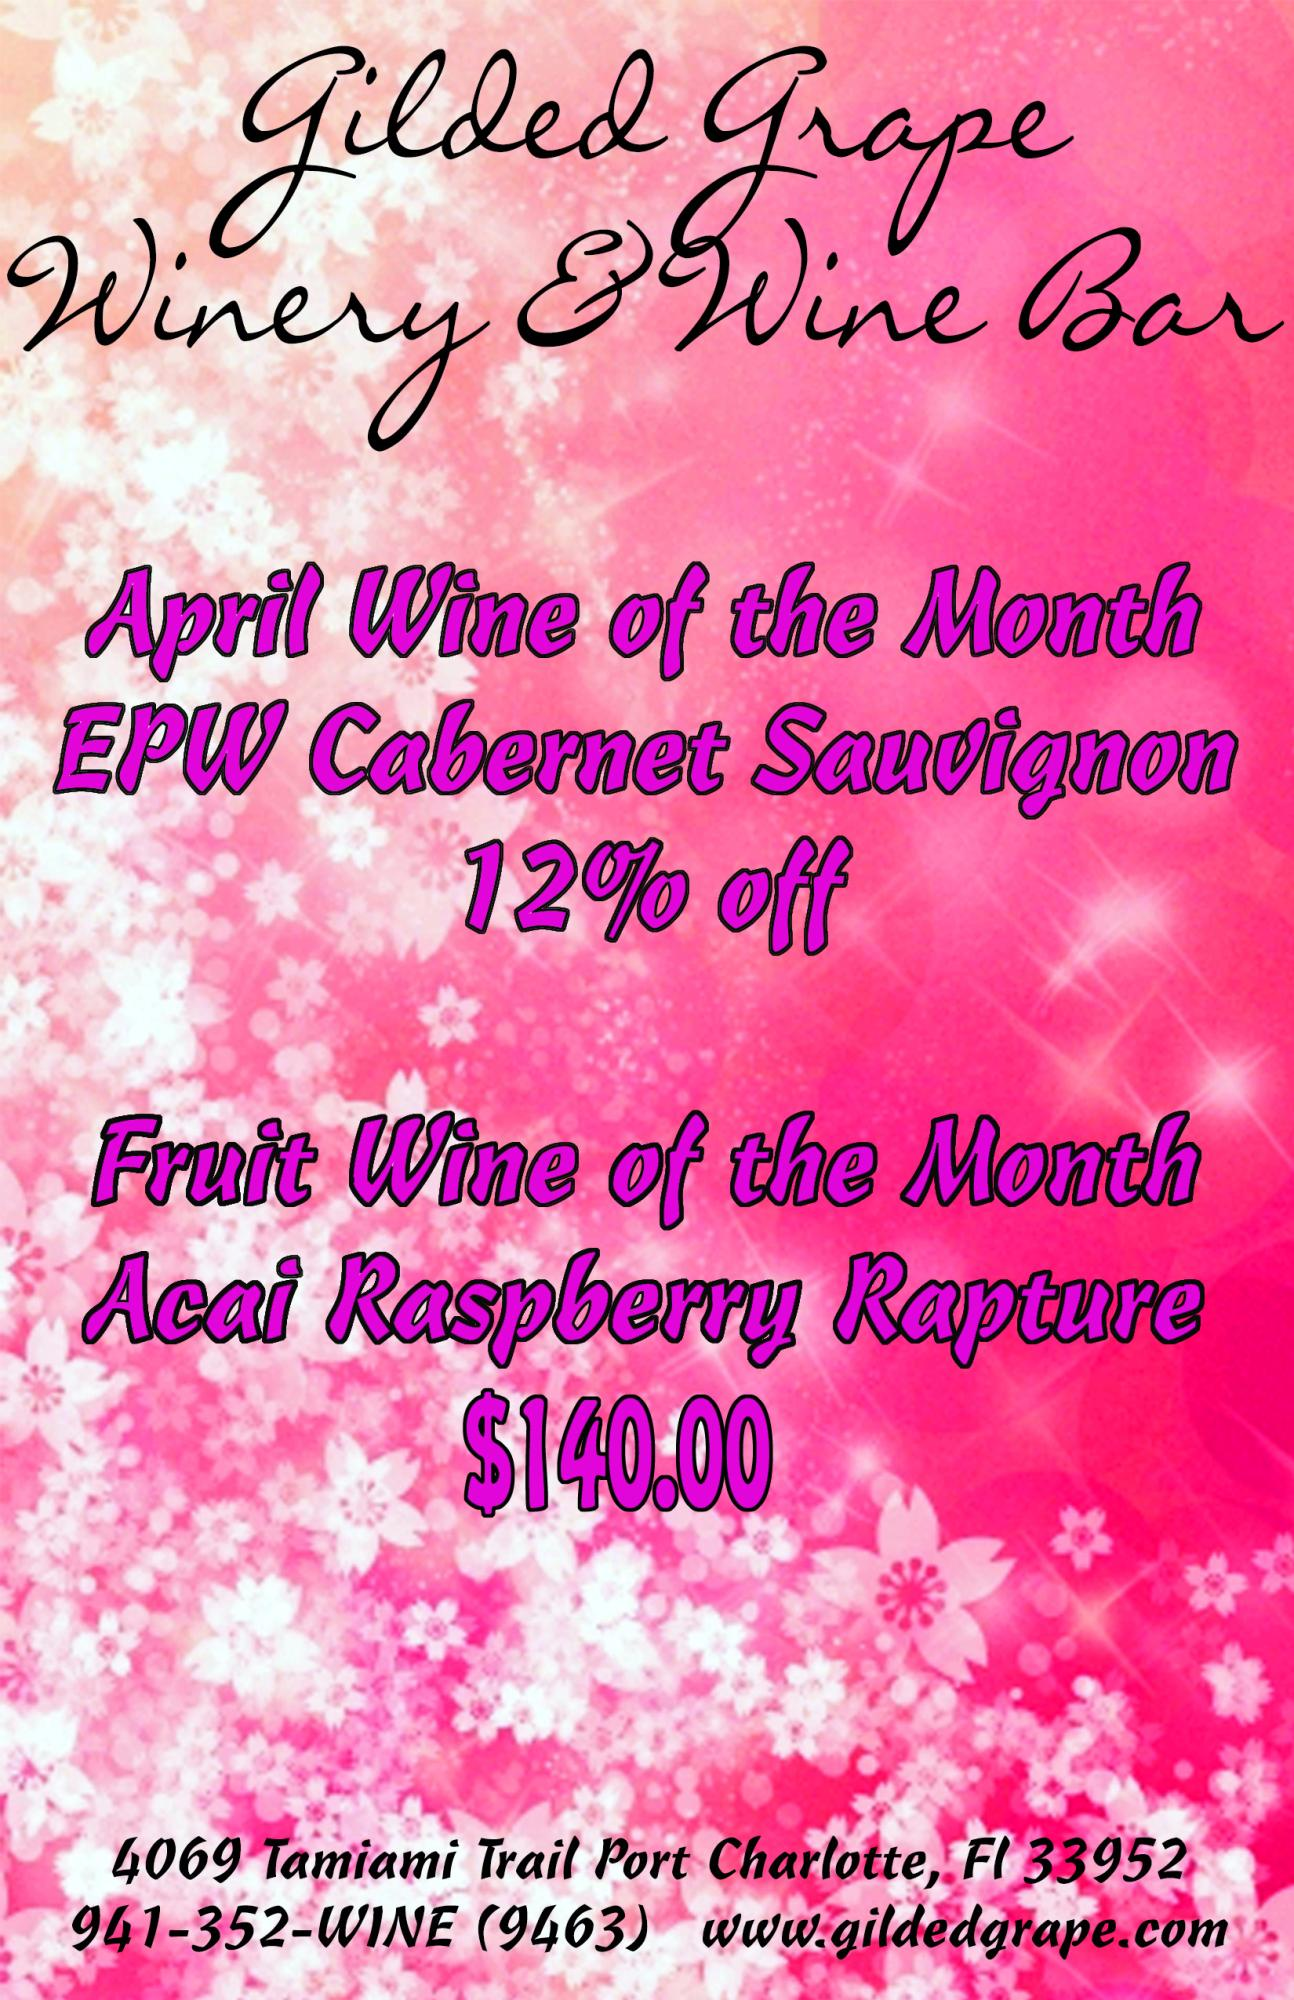 4-18_Wine_of_the_Month58627.jpg